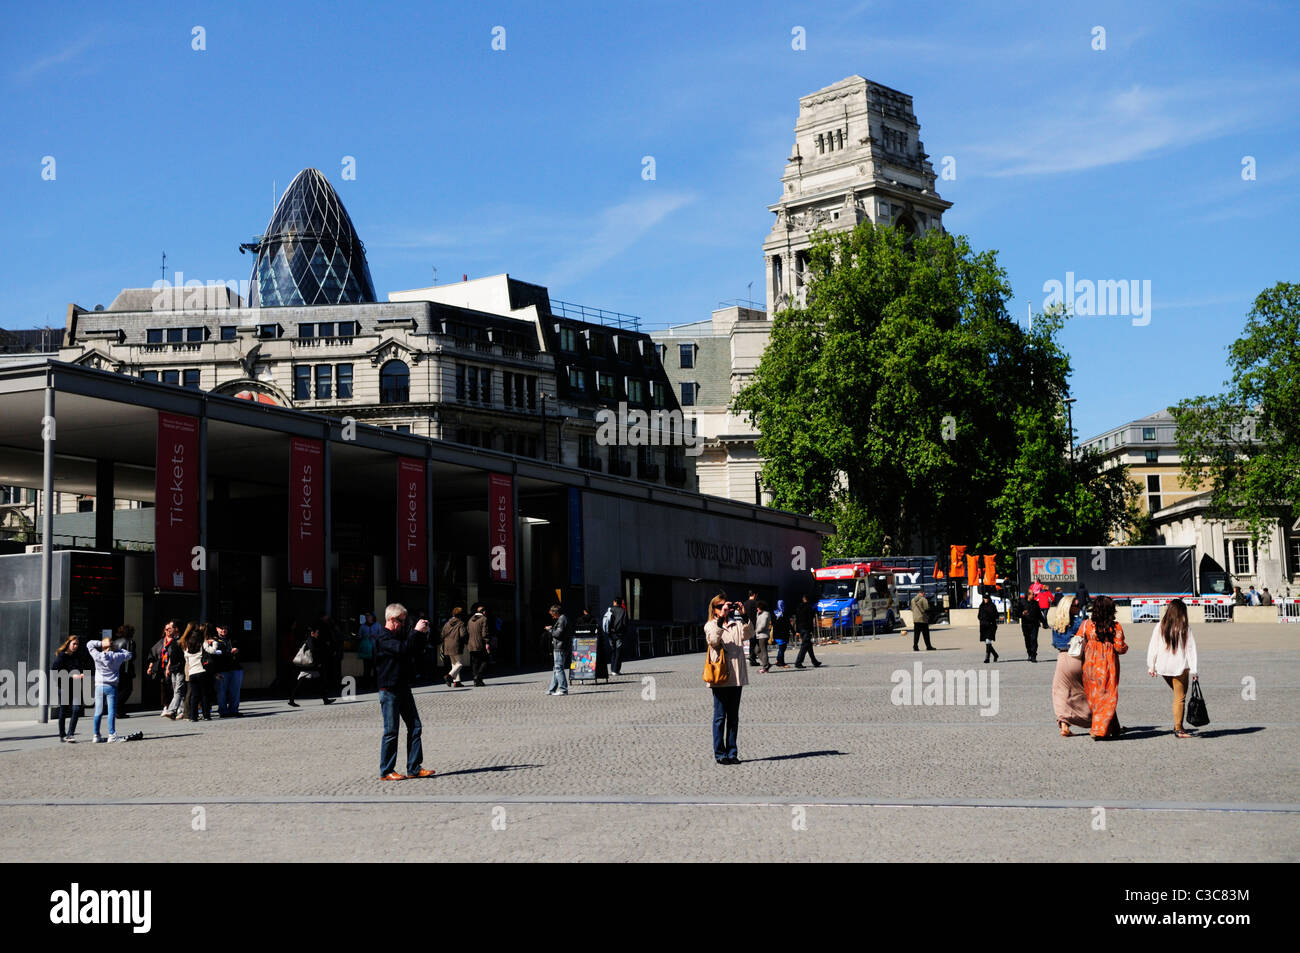 People taking photos outside The Tower of London ticket office, Tower Hill, London, England, UK - Stock Image